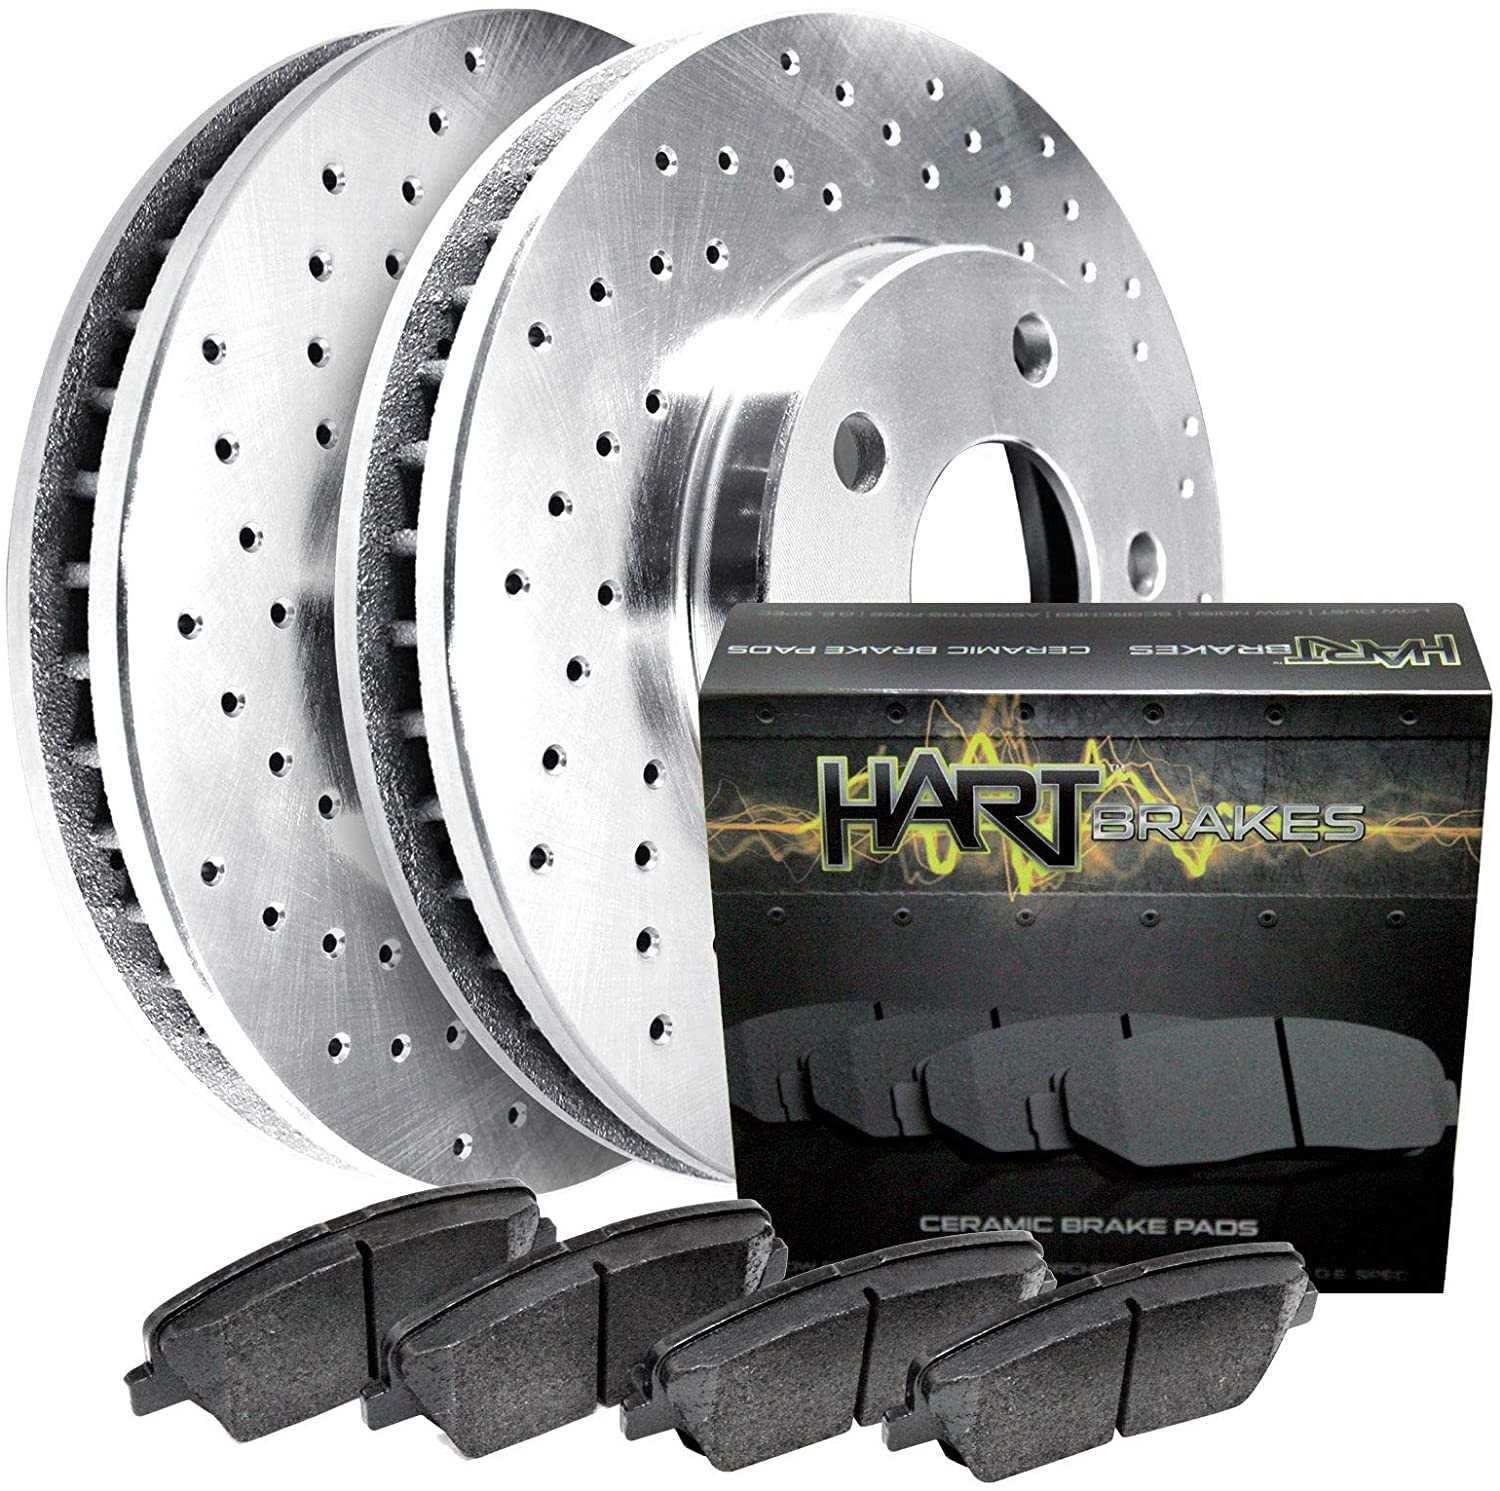 Fits Saturn SC, SL, SL1, SL2, SC1 Rear Drilled Brake Rotors Kit+Ceramic Brake Pads